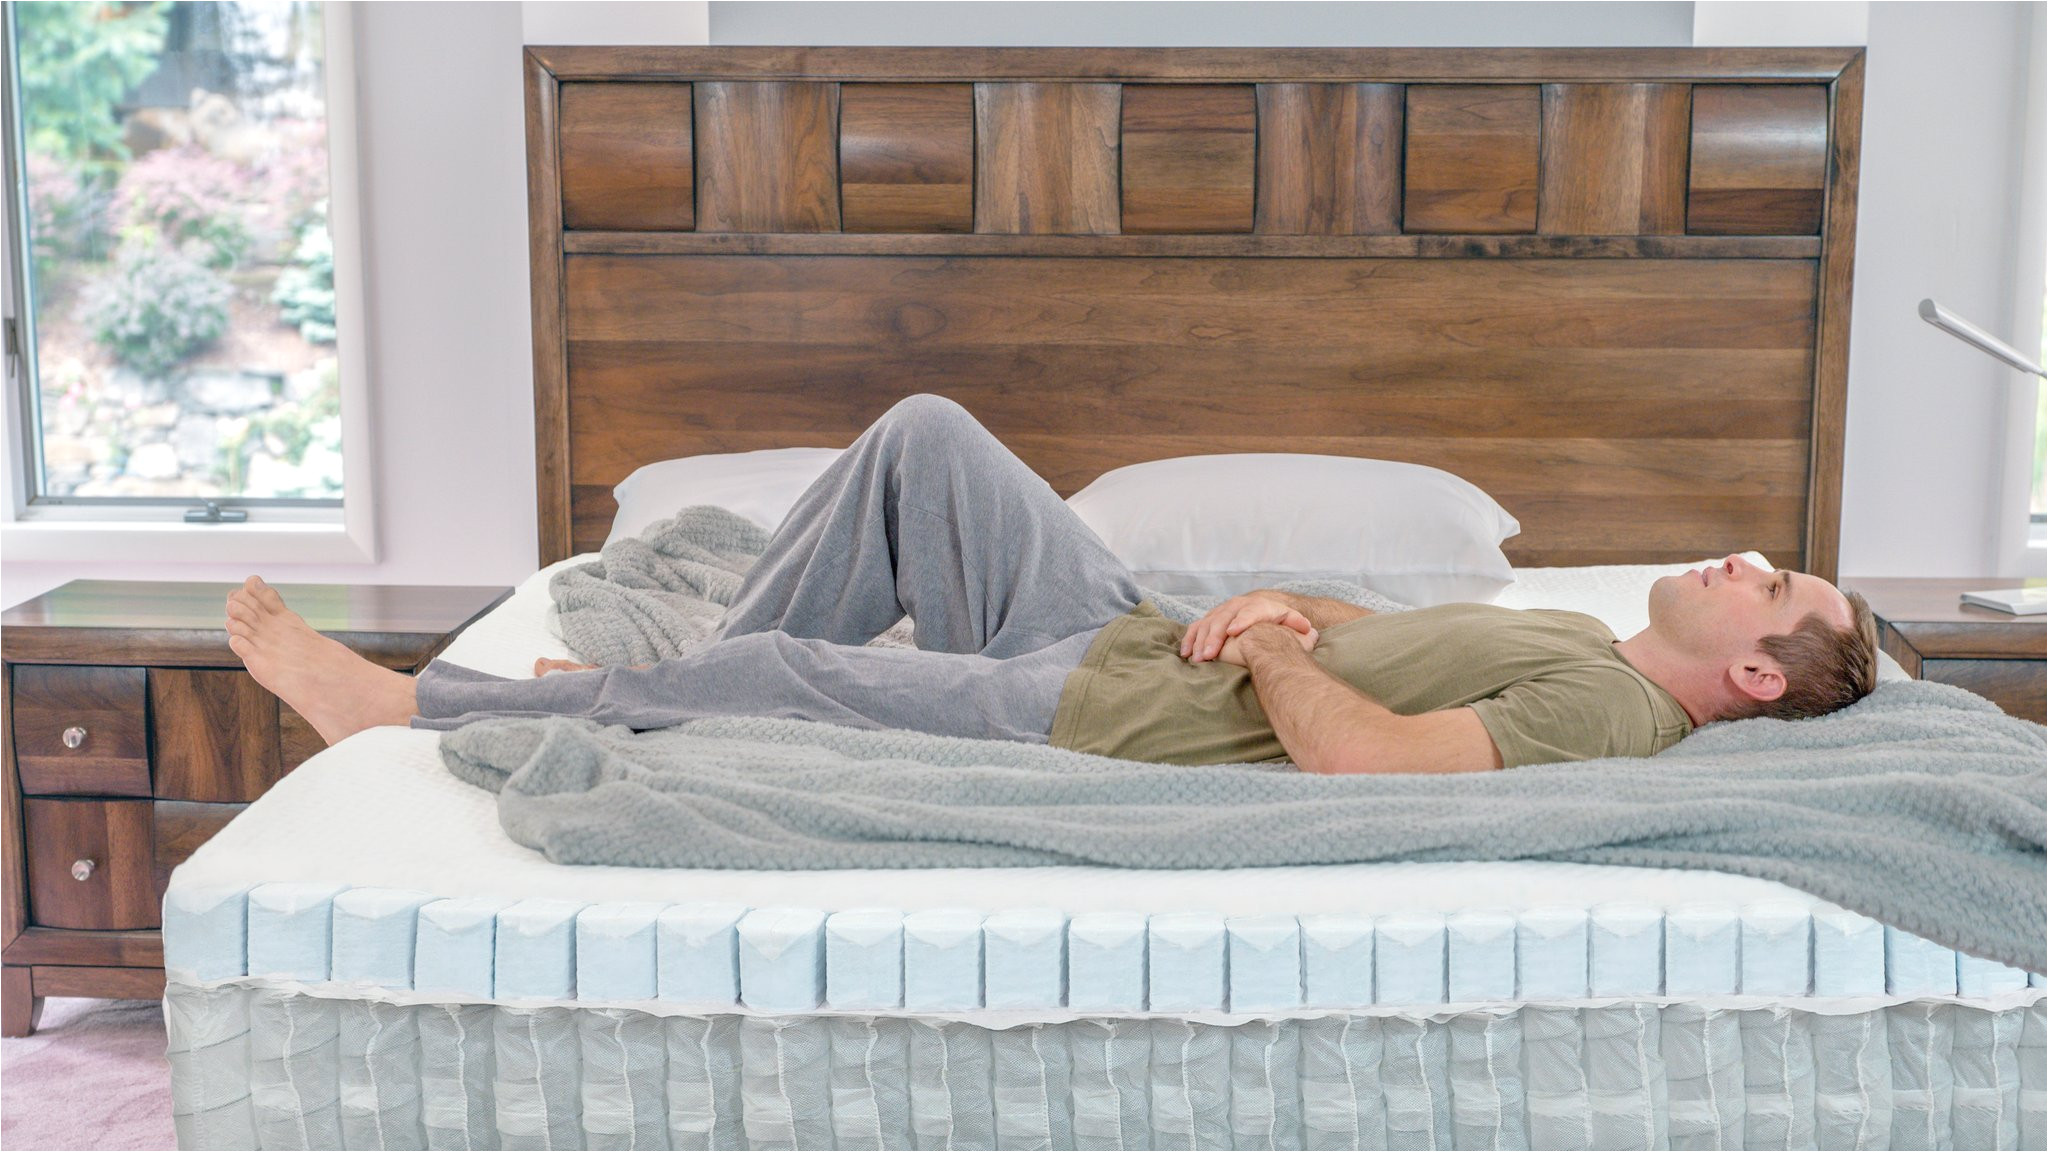 Tn.com Mattress Reviews Sleepovation 700 Tiny Mattresses In One for Back Pain Relief